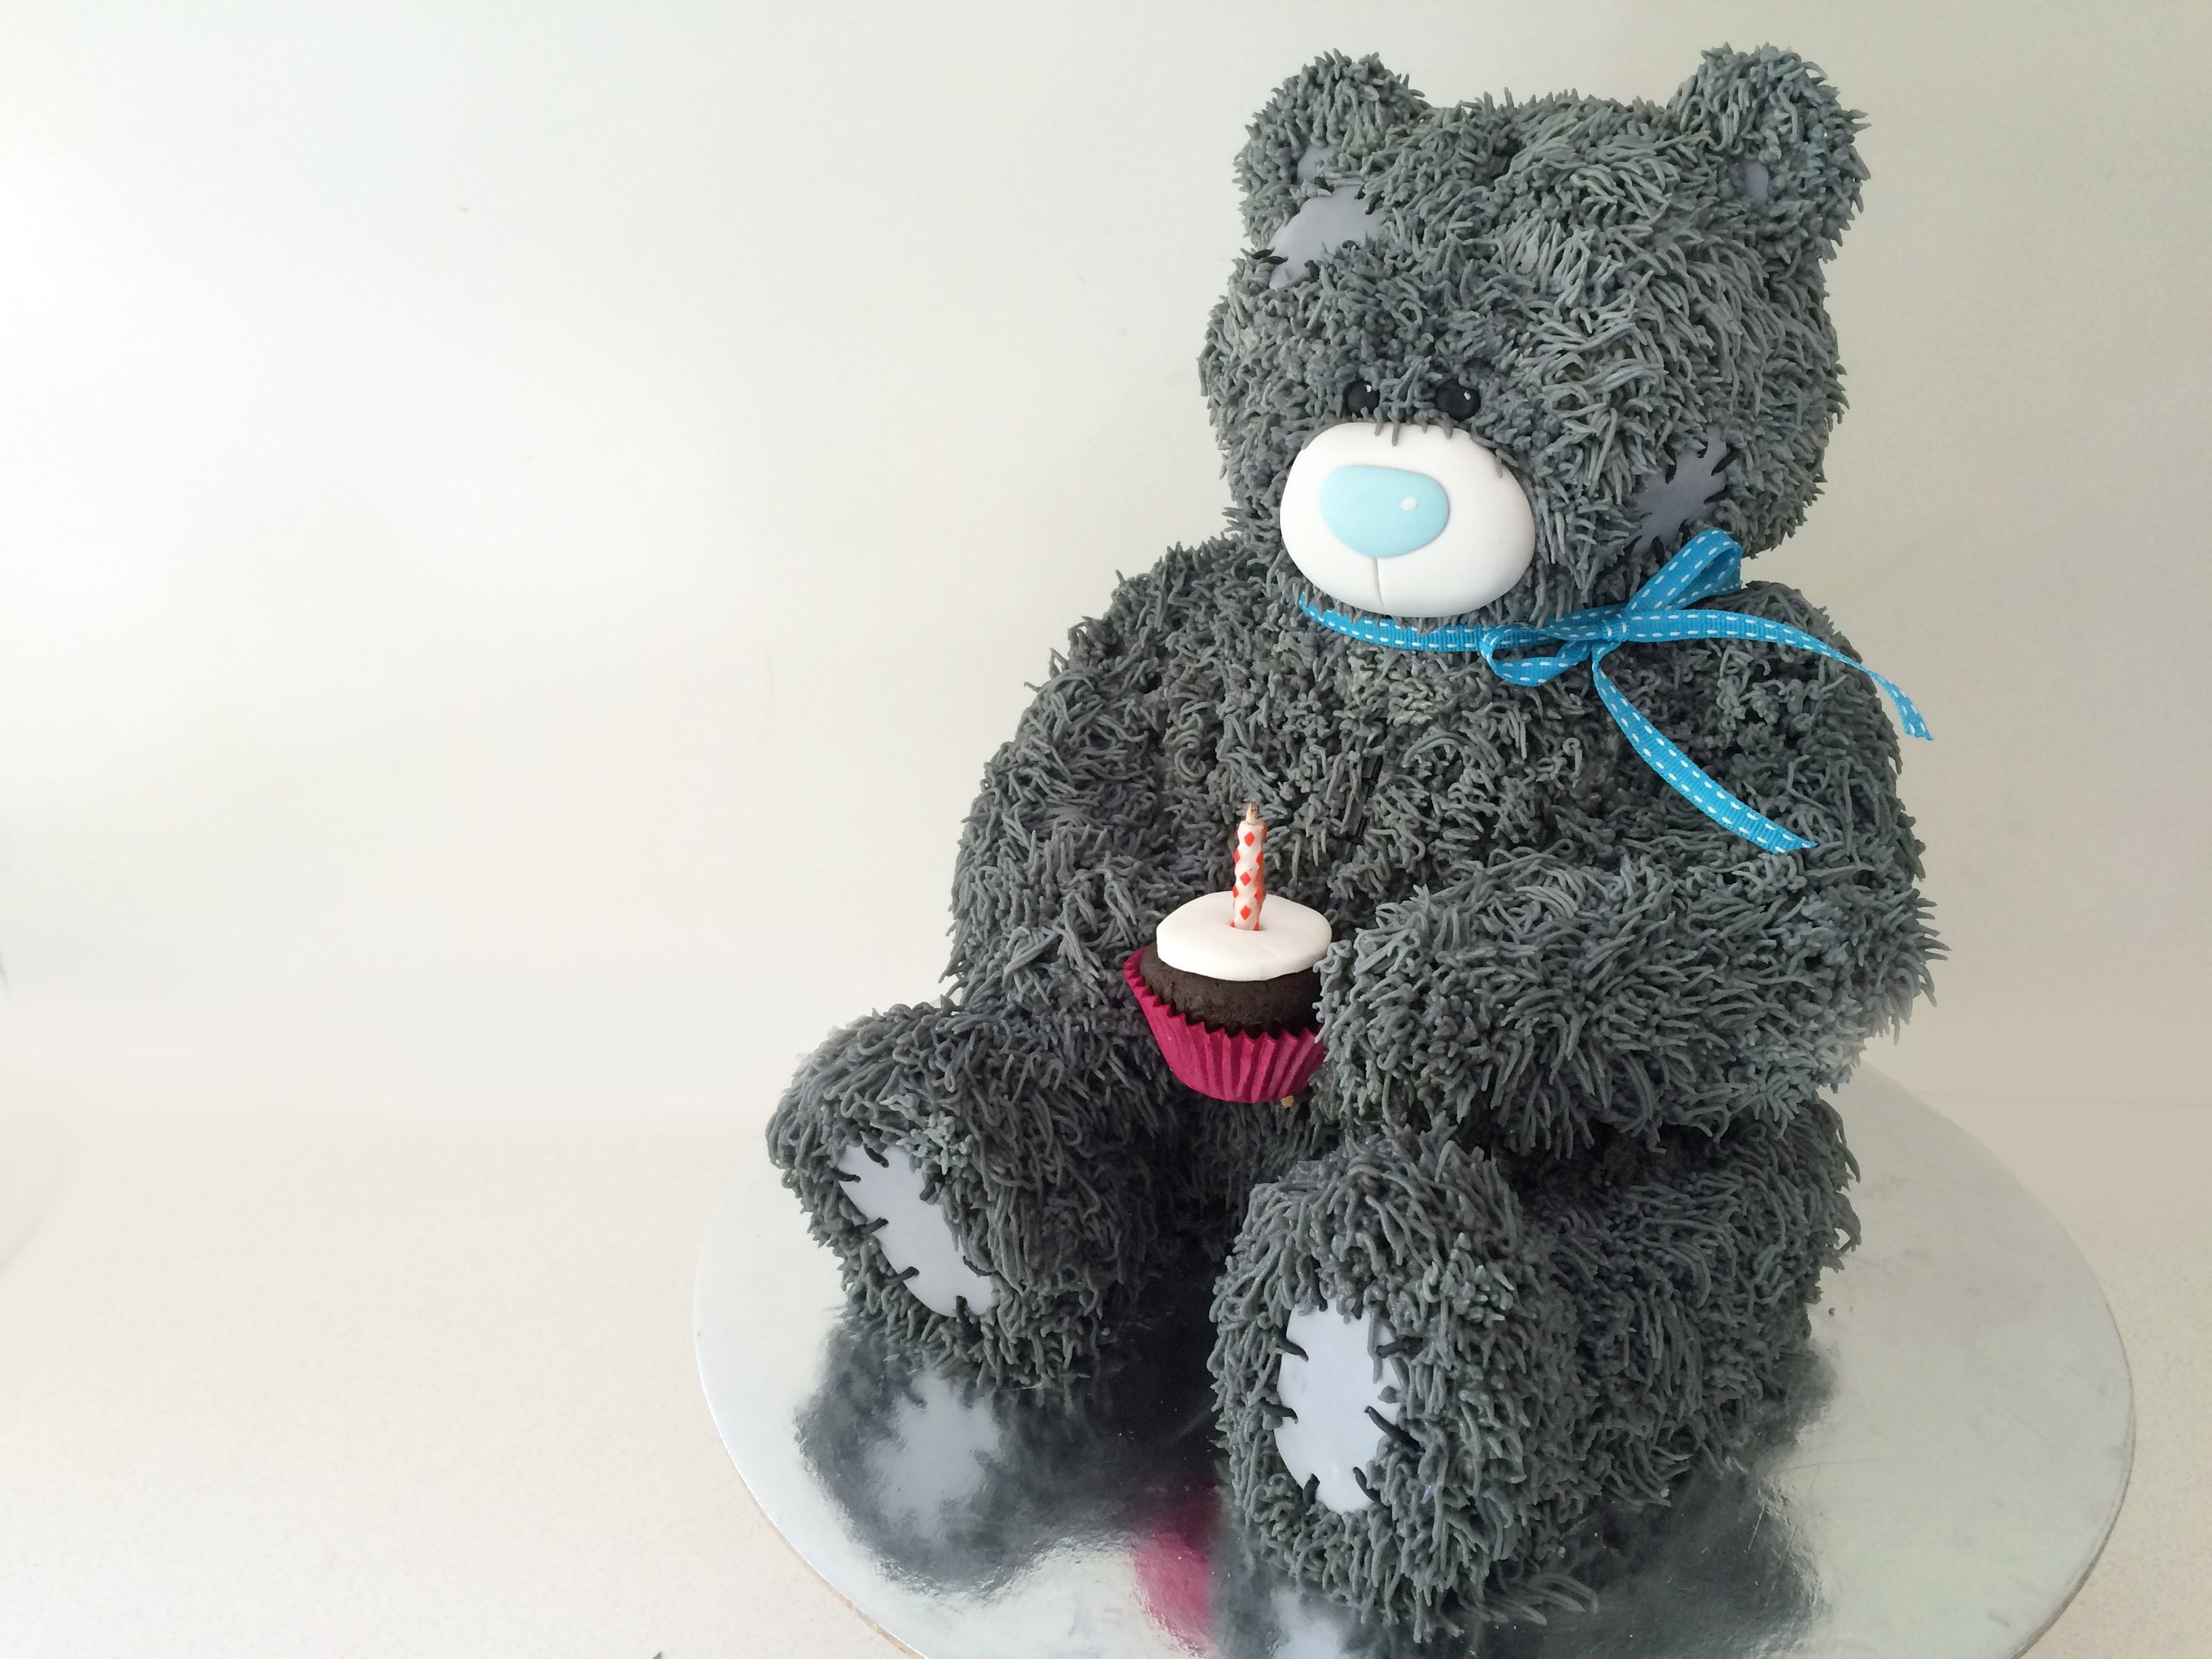 howtocookthat cakes dessert chocolate teddy bear cake